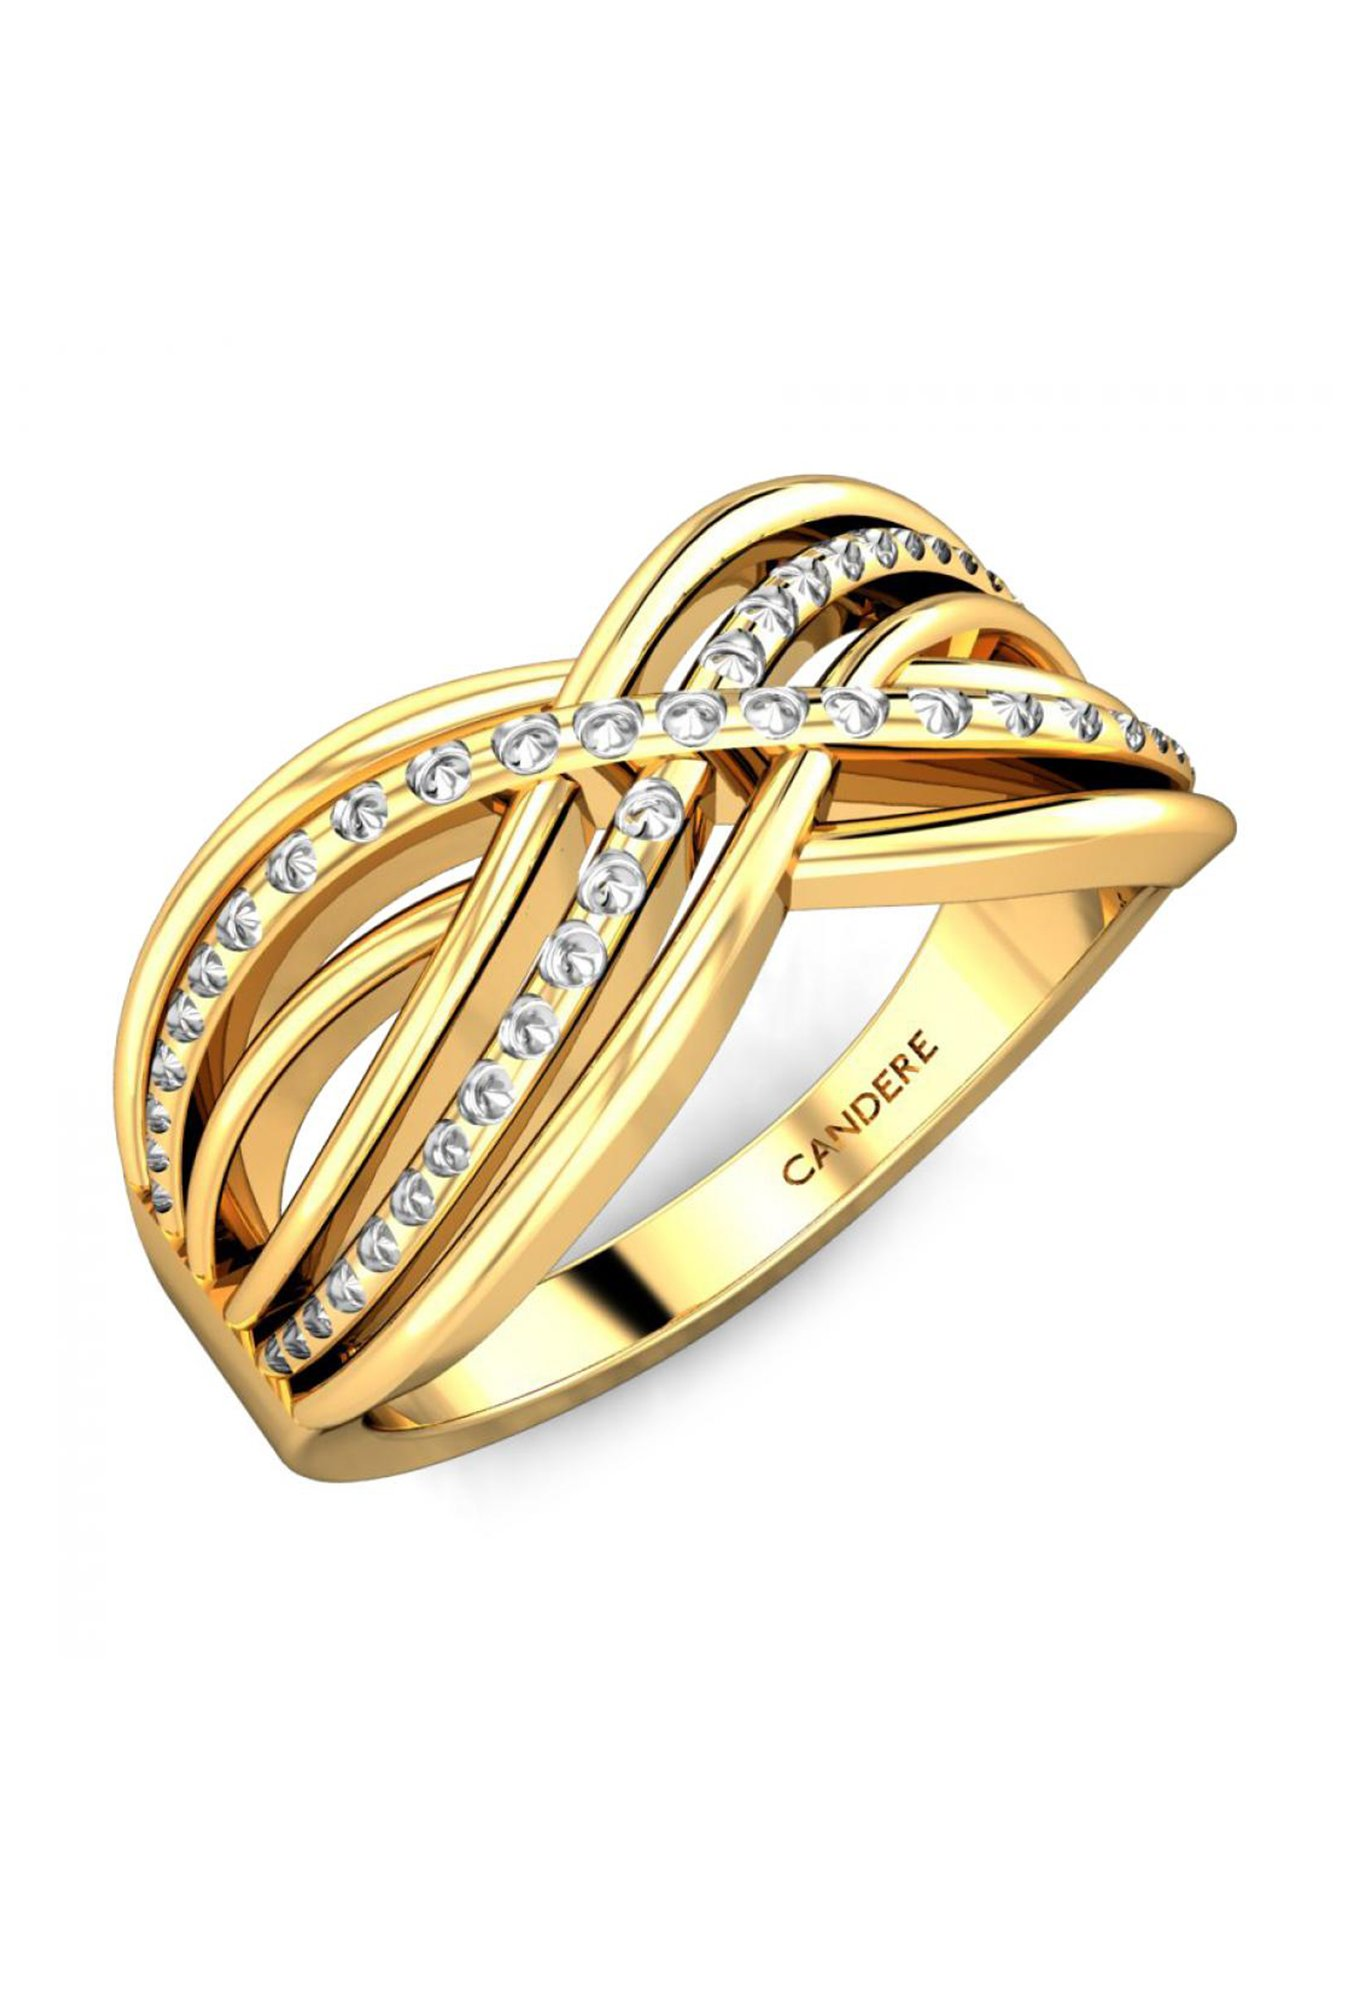 engagement square hoardjewelry gold products rings wedding band